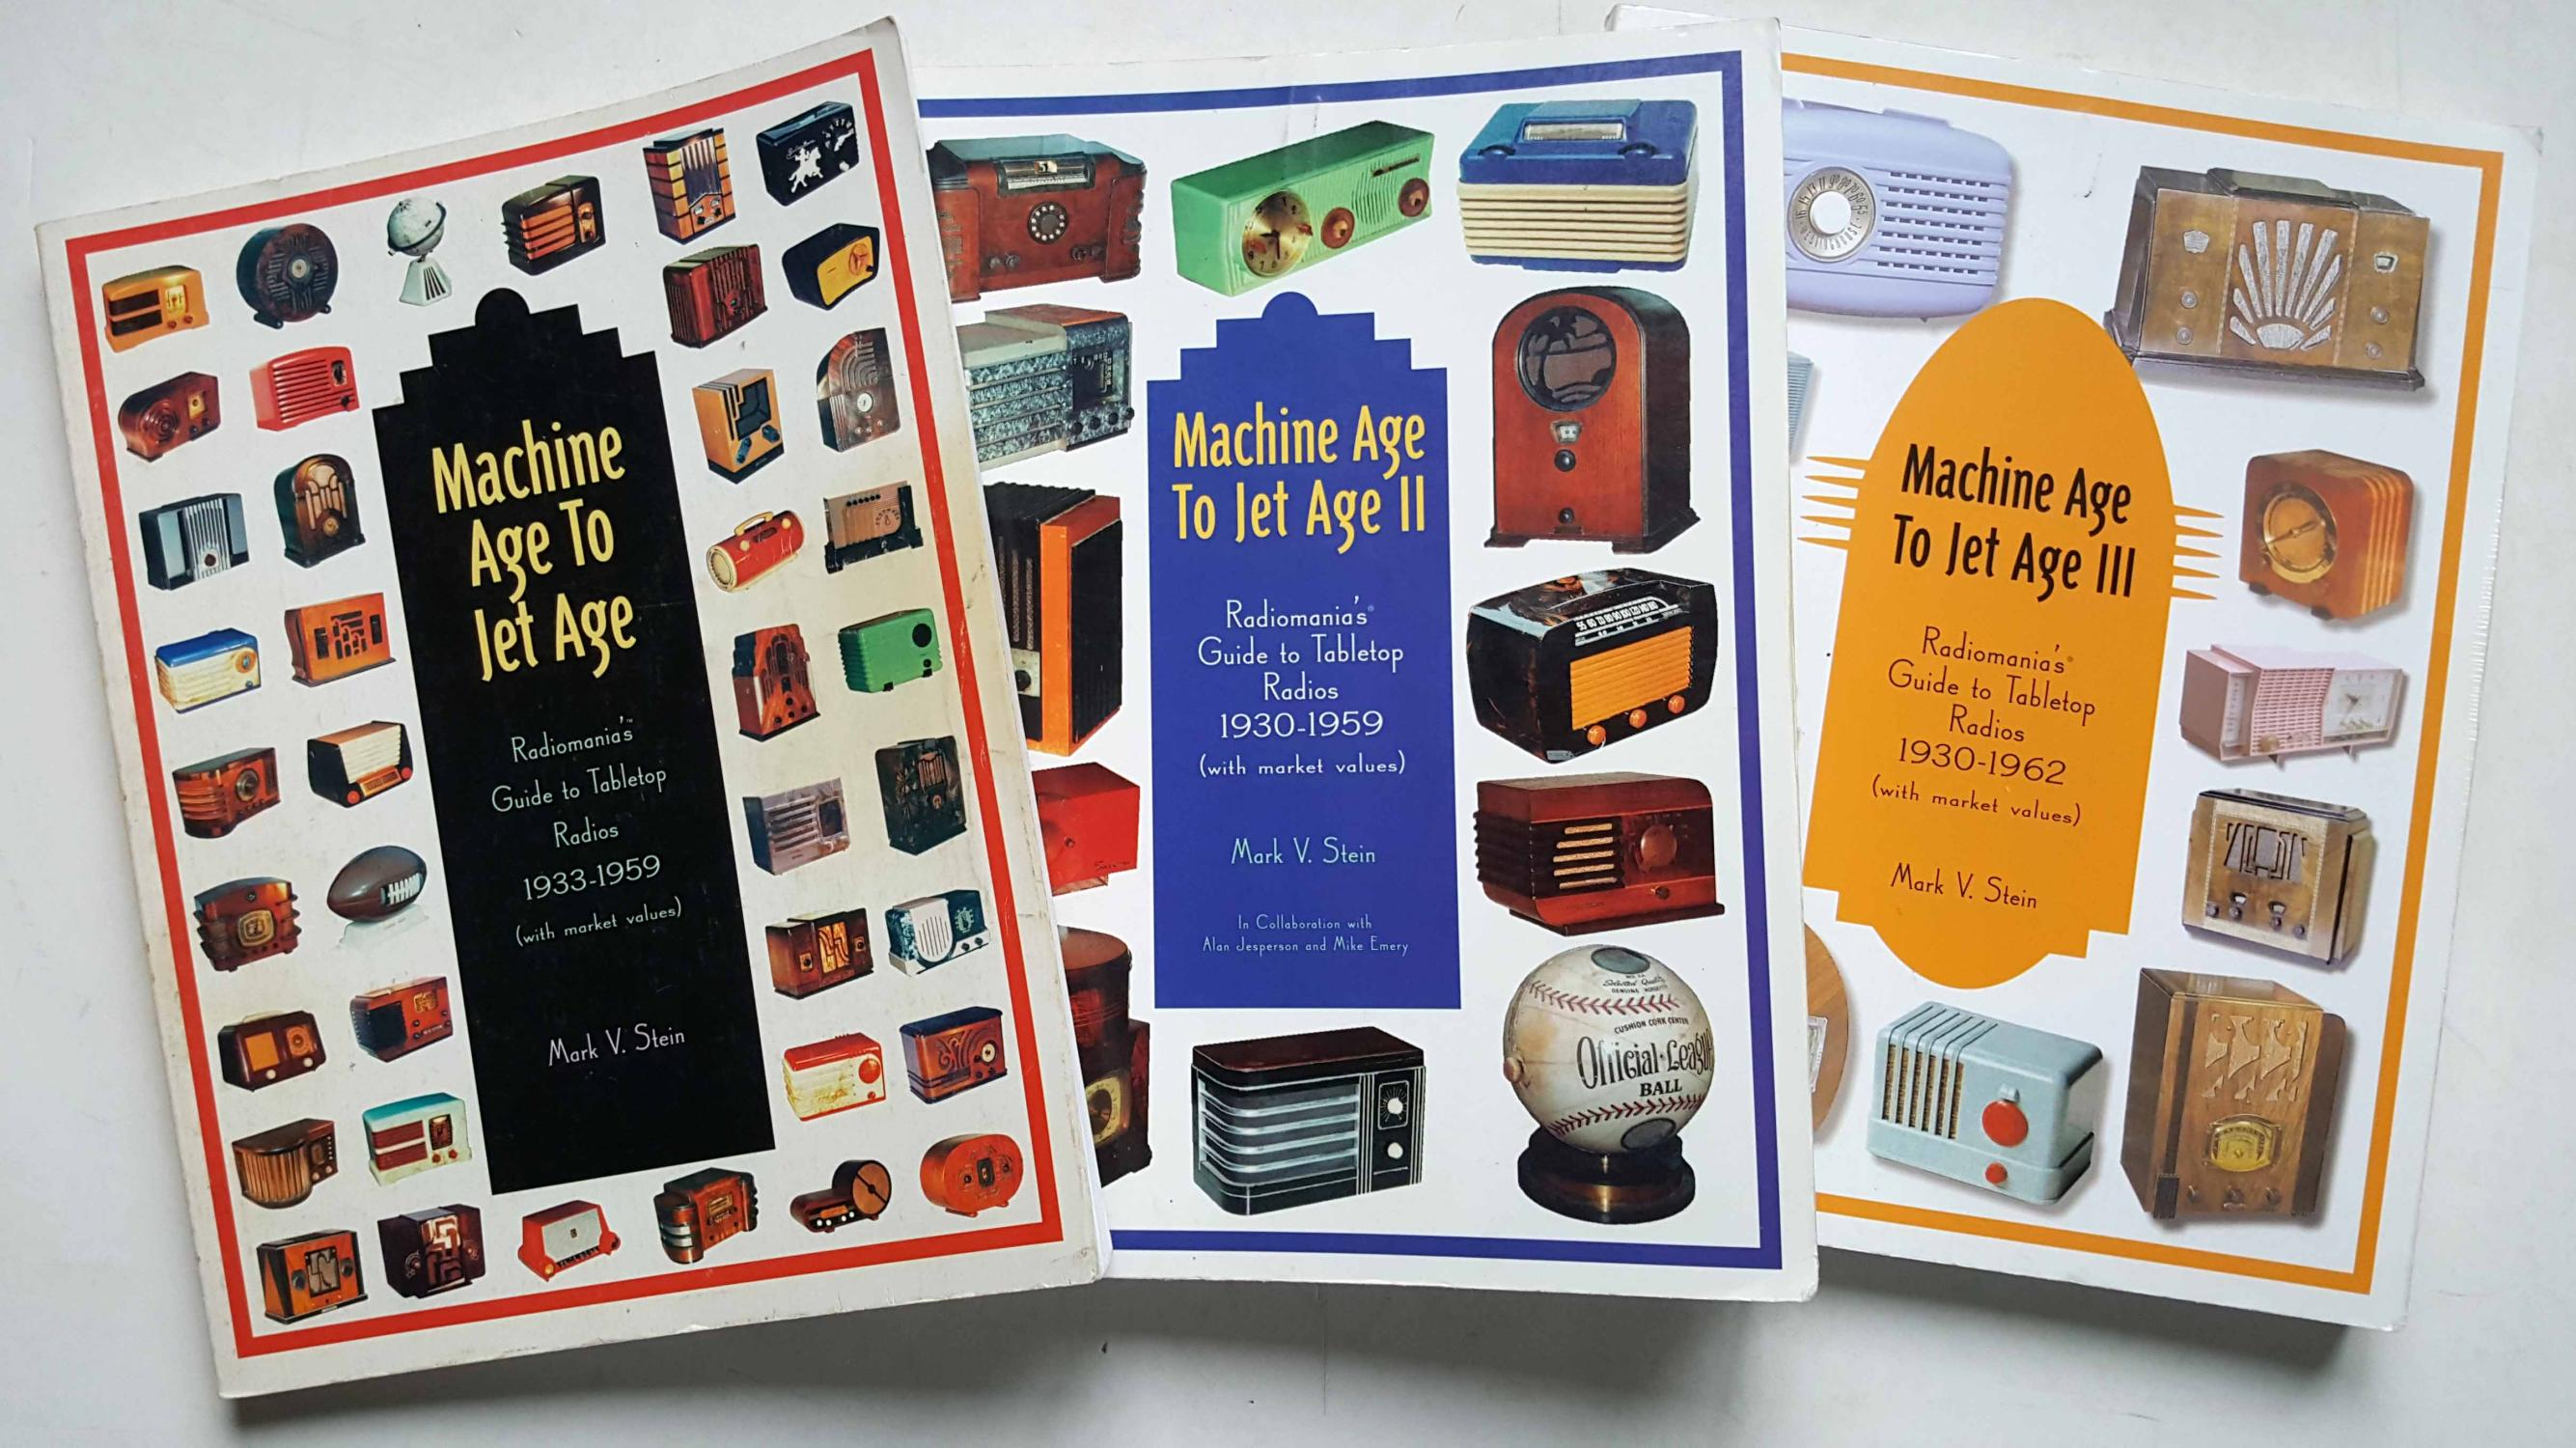 Machine Age to Jet Age: Radiomania's Guide to Tabletop Radios (Volumes I-III) Mark V. Stein Very Good Softcover